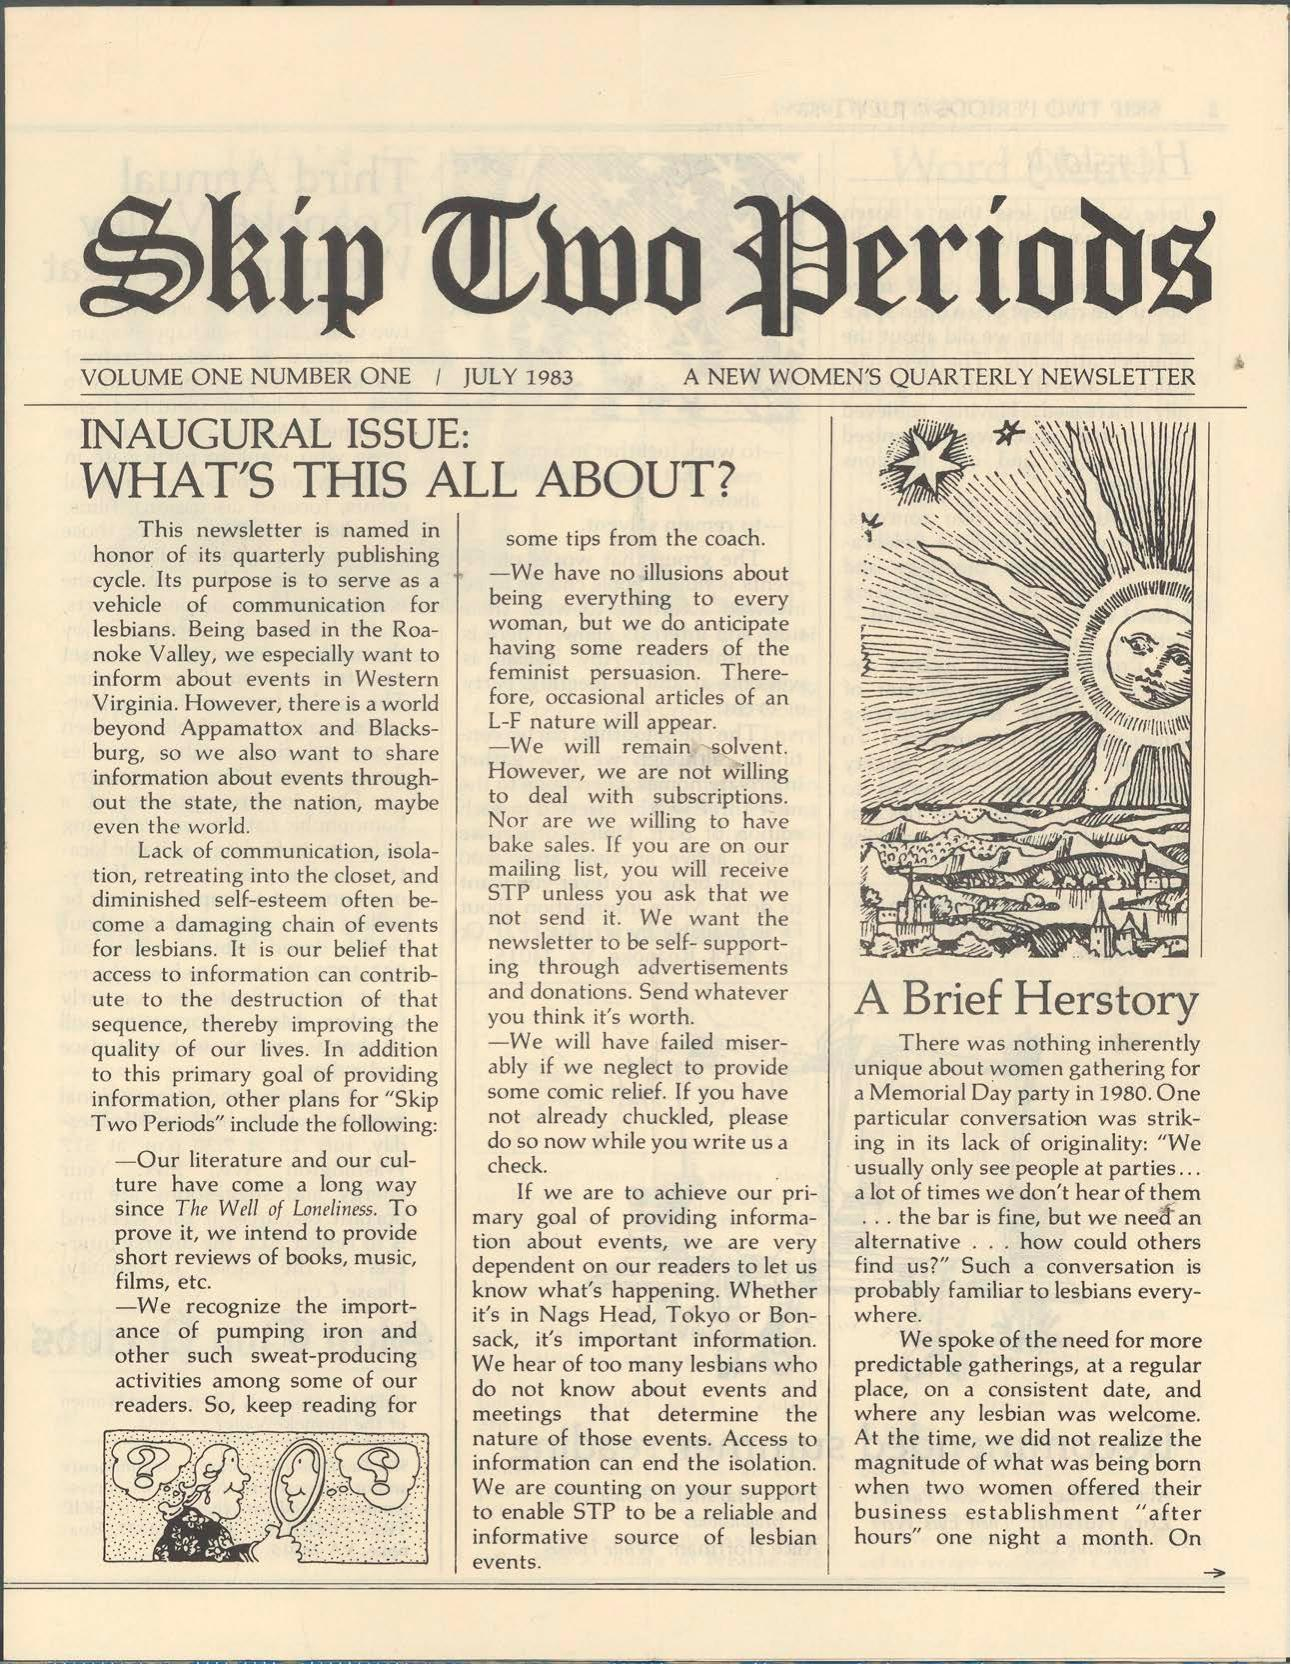 Skip_Two_Periods_v1n1_small-page-001.jpg